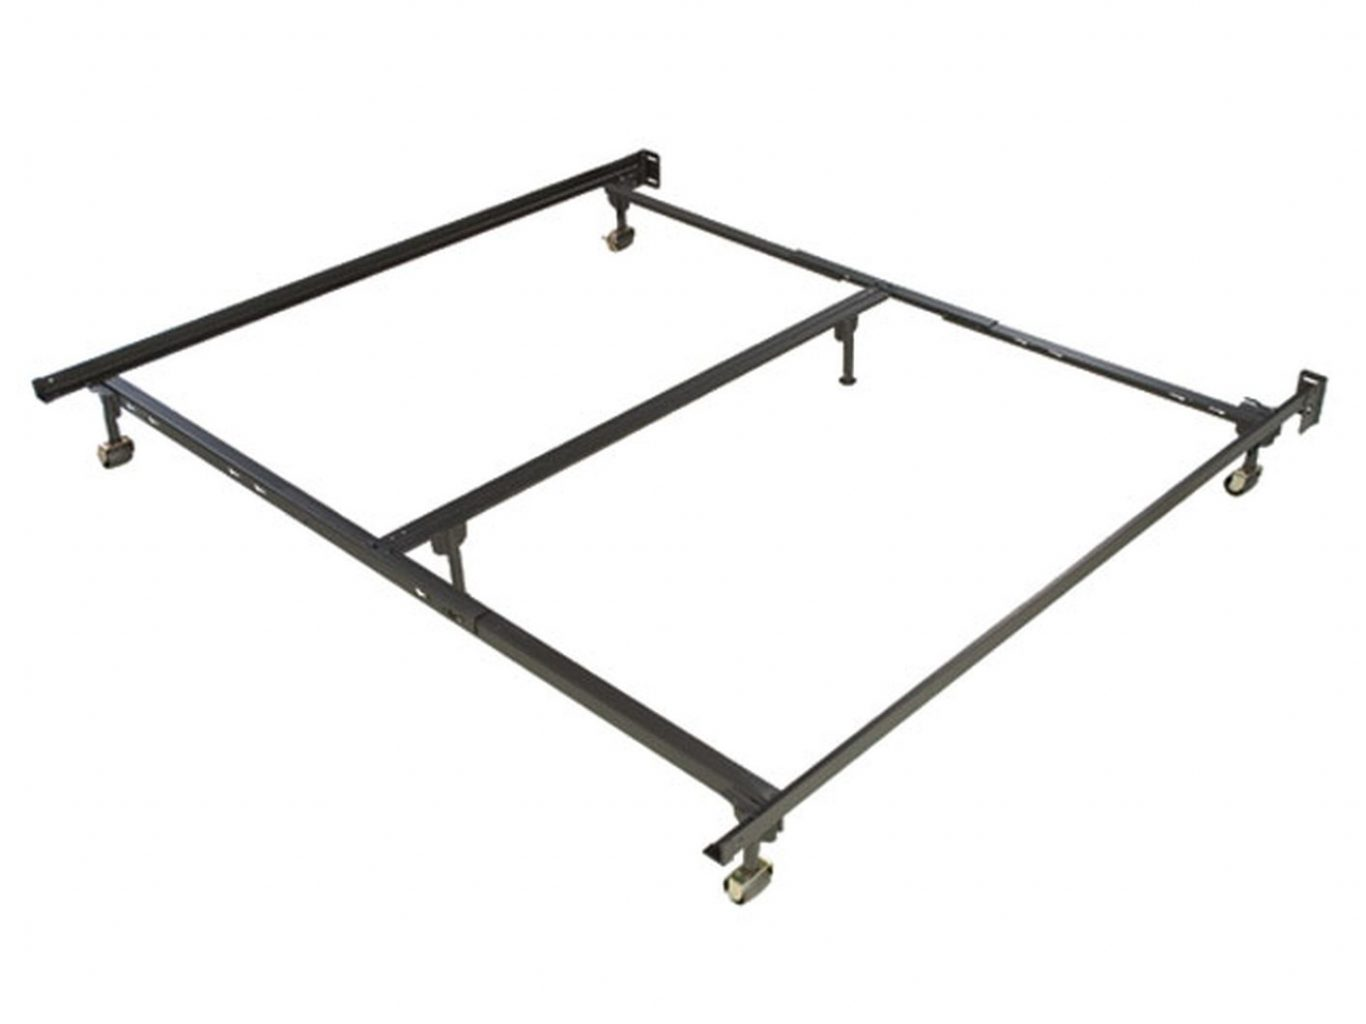 cheap queen size bed frame ikea canada